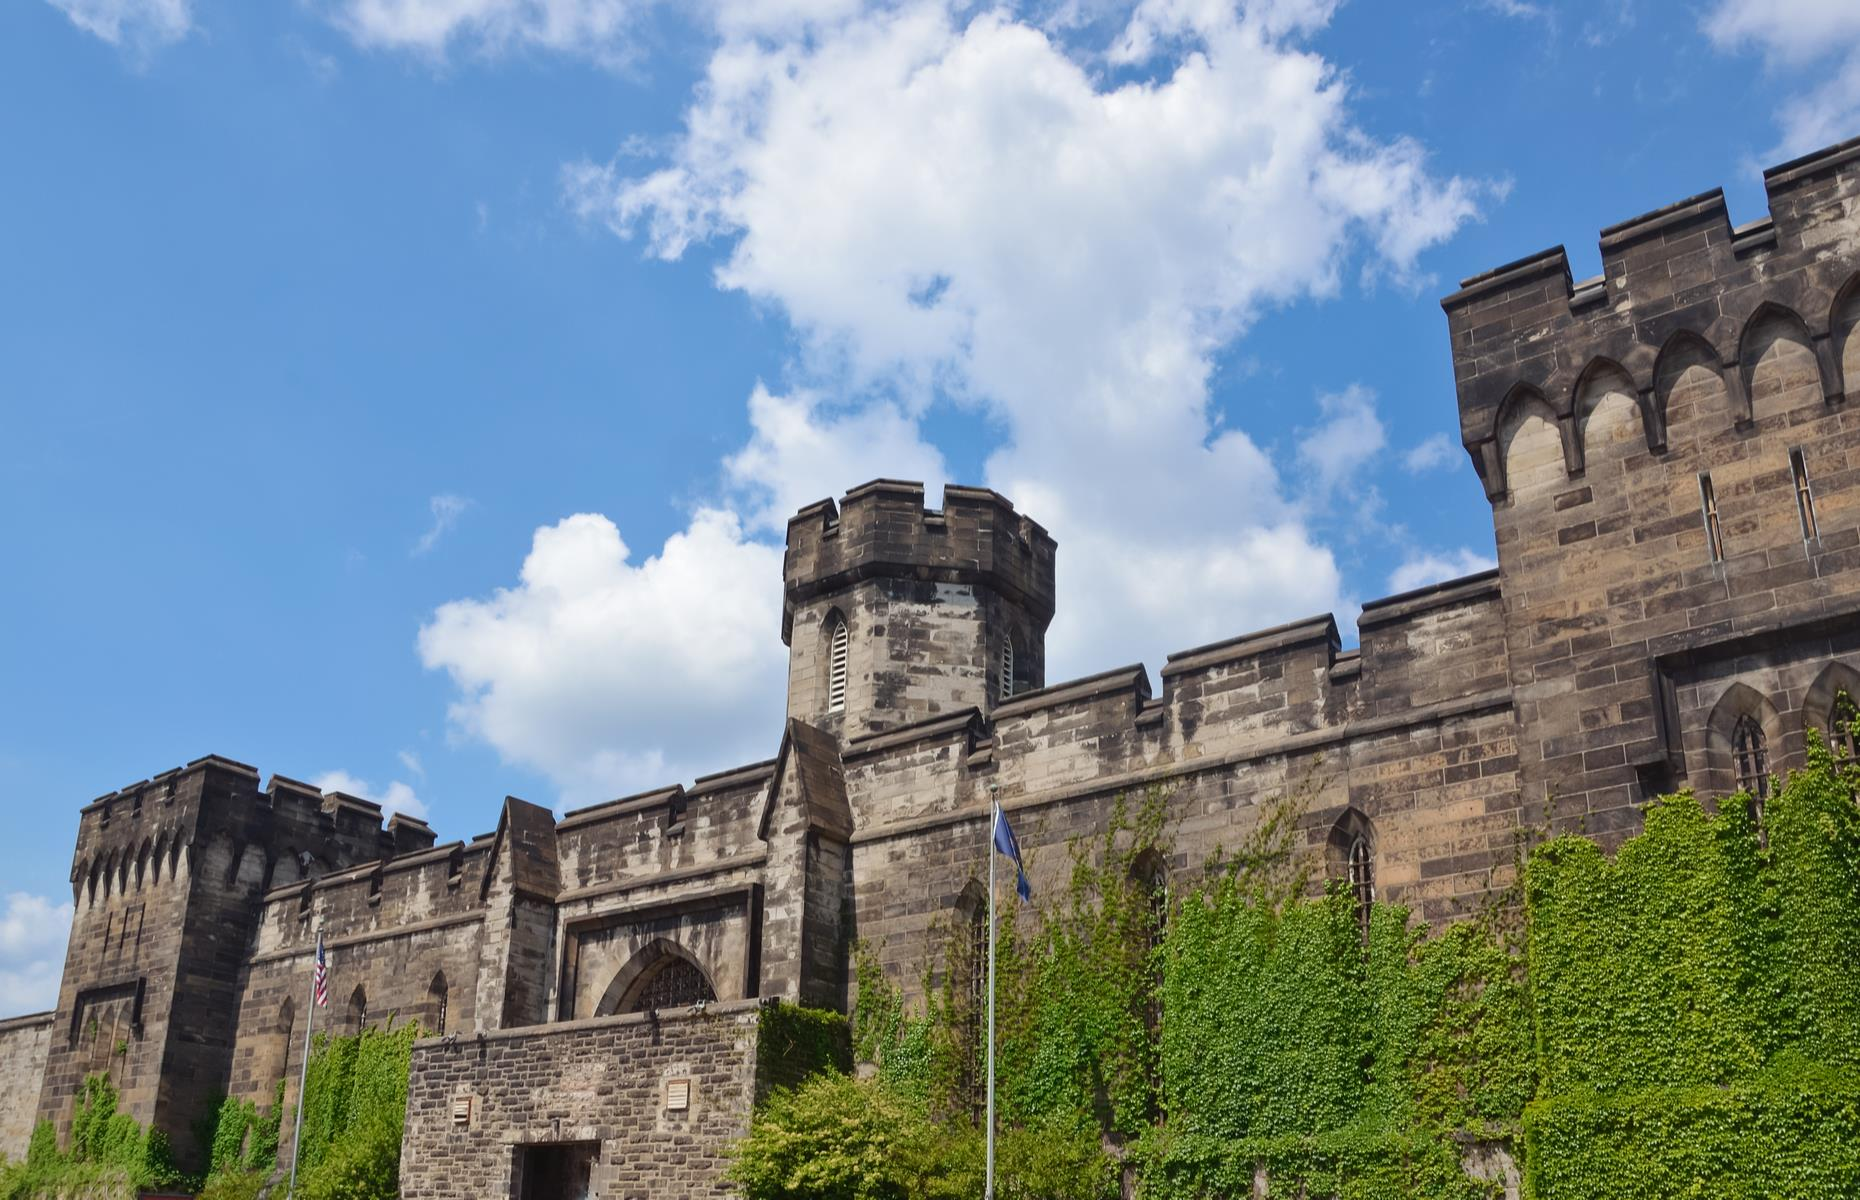 Slide 76 of 101: Perhaps the best-known abandoned building in America, the Eastern State Penitentiary was built in the 1820s and imprisoned some of the USA's most notorious criminals during its time. These included famous gangster Al Capone, and Leo Callahan – the only inmate ever to successfully escape the penitentiary.